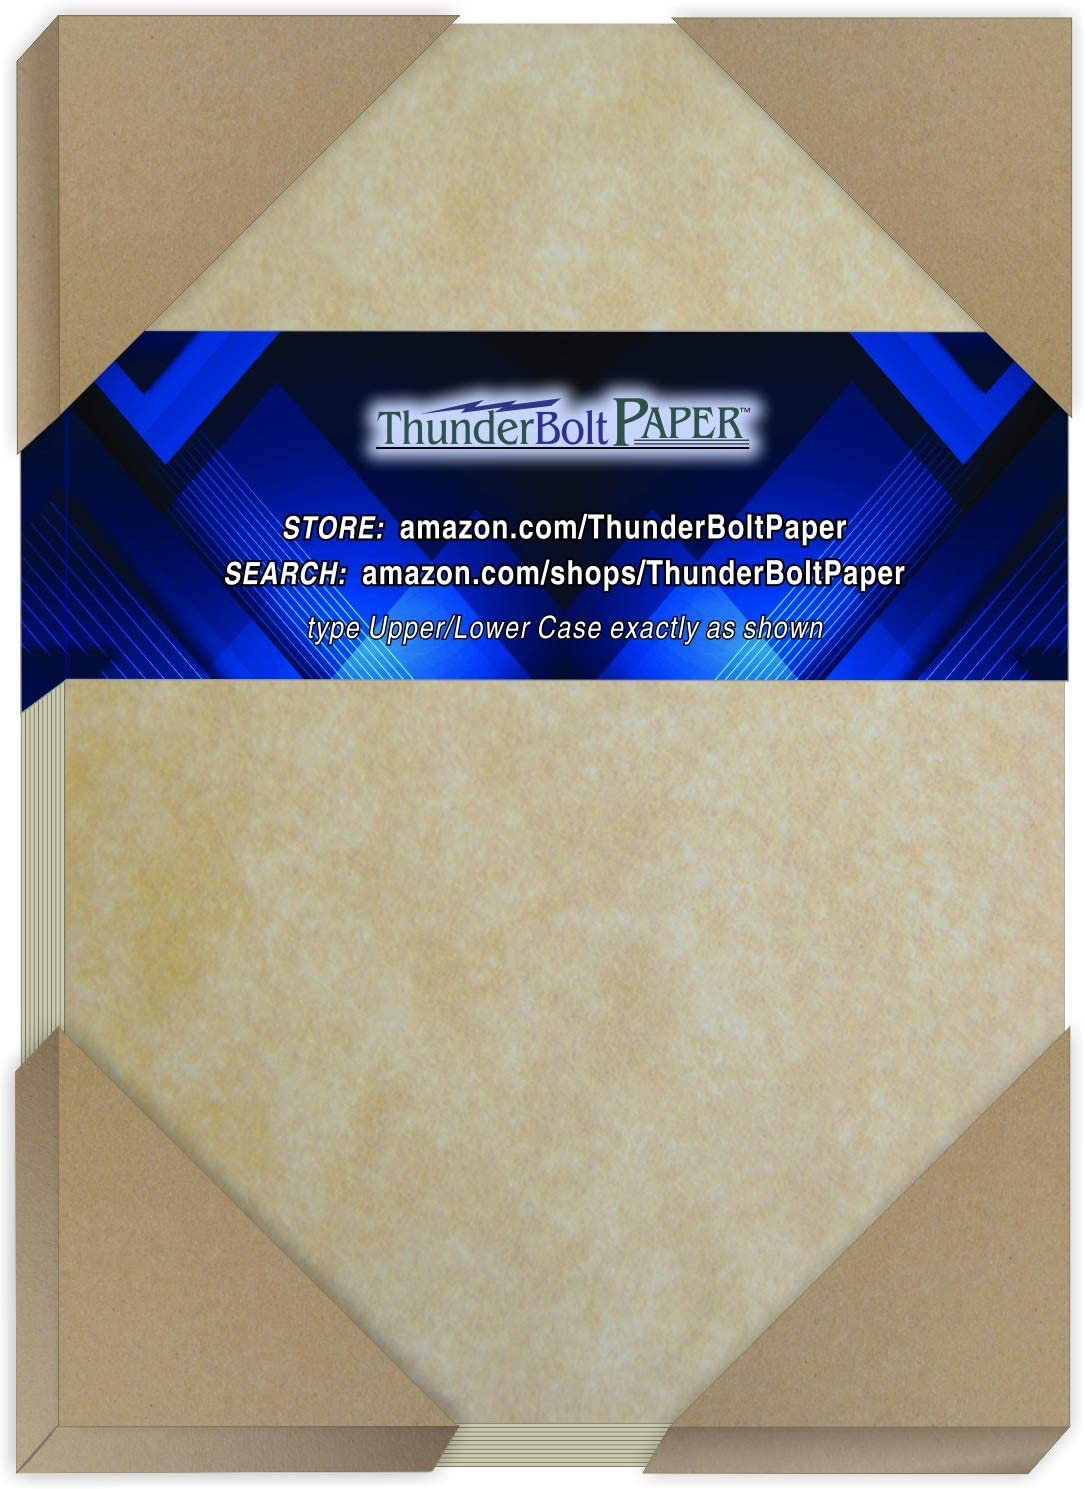 150 Old Age Parchment 60# Text (=24# Bond) Paper Sheets - 5.5 X 8.5 Inches Half Letter   Flyer Size - 60 Pound is Not Card Weight - Vintage Colored Old Parchment Semblance